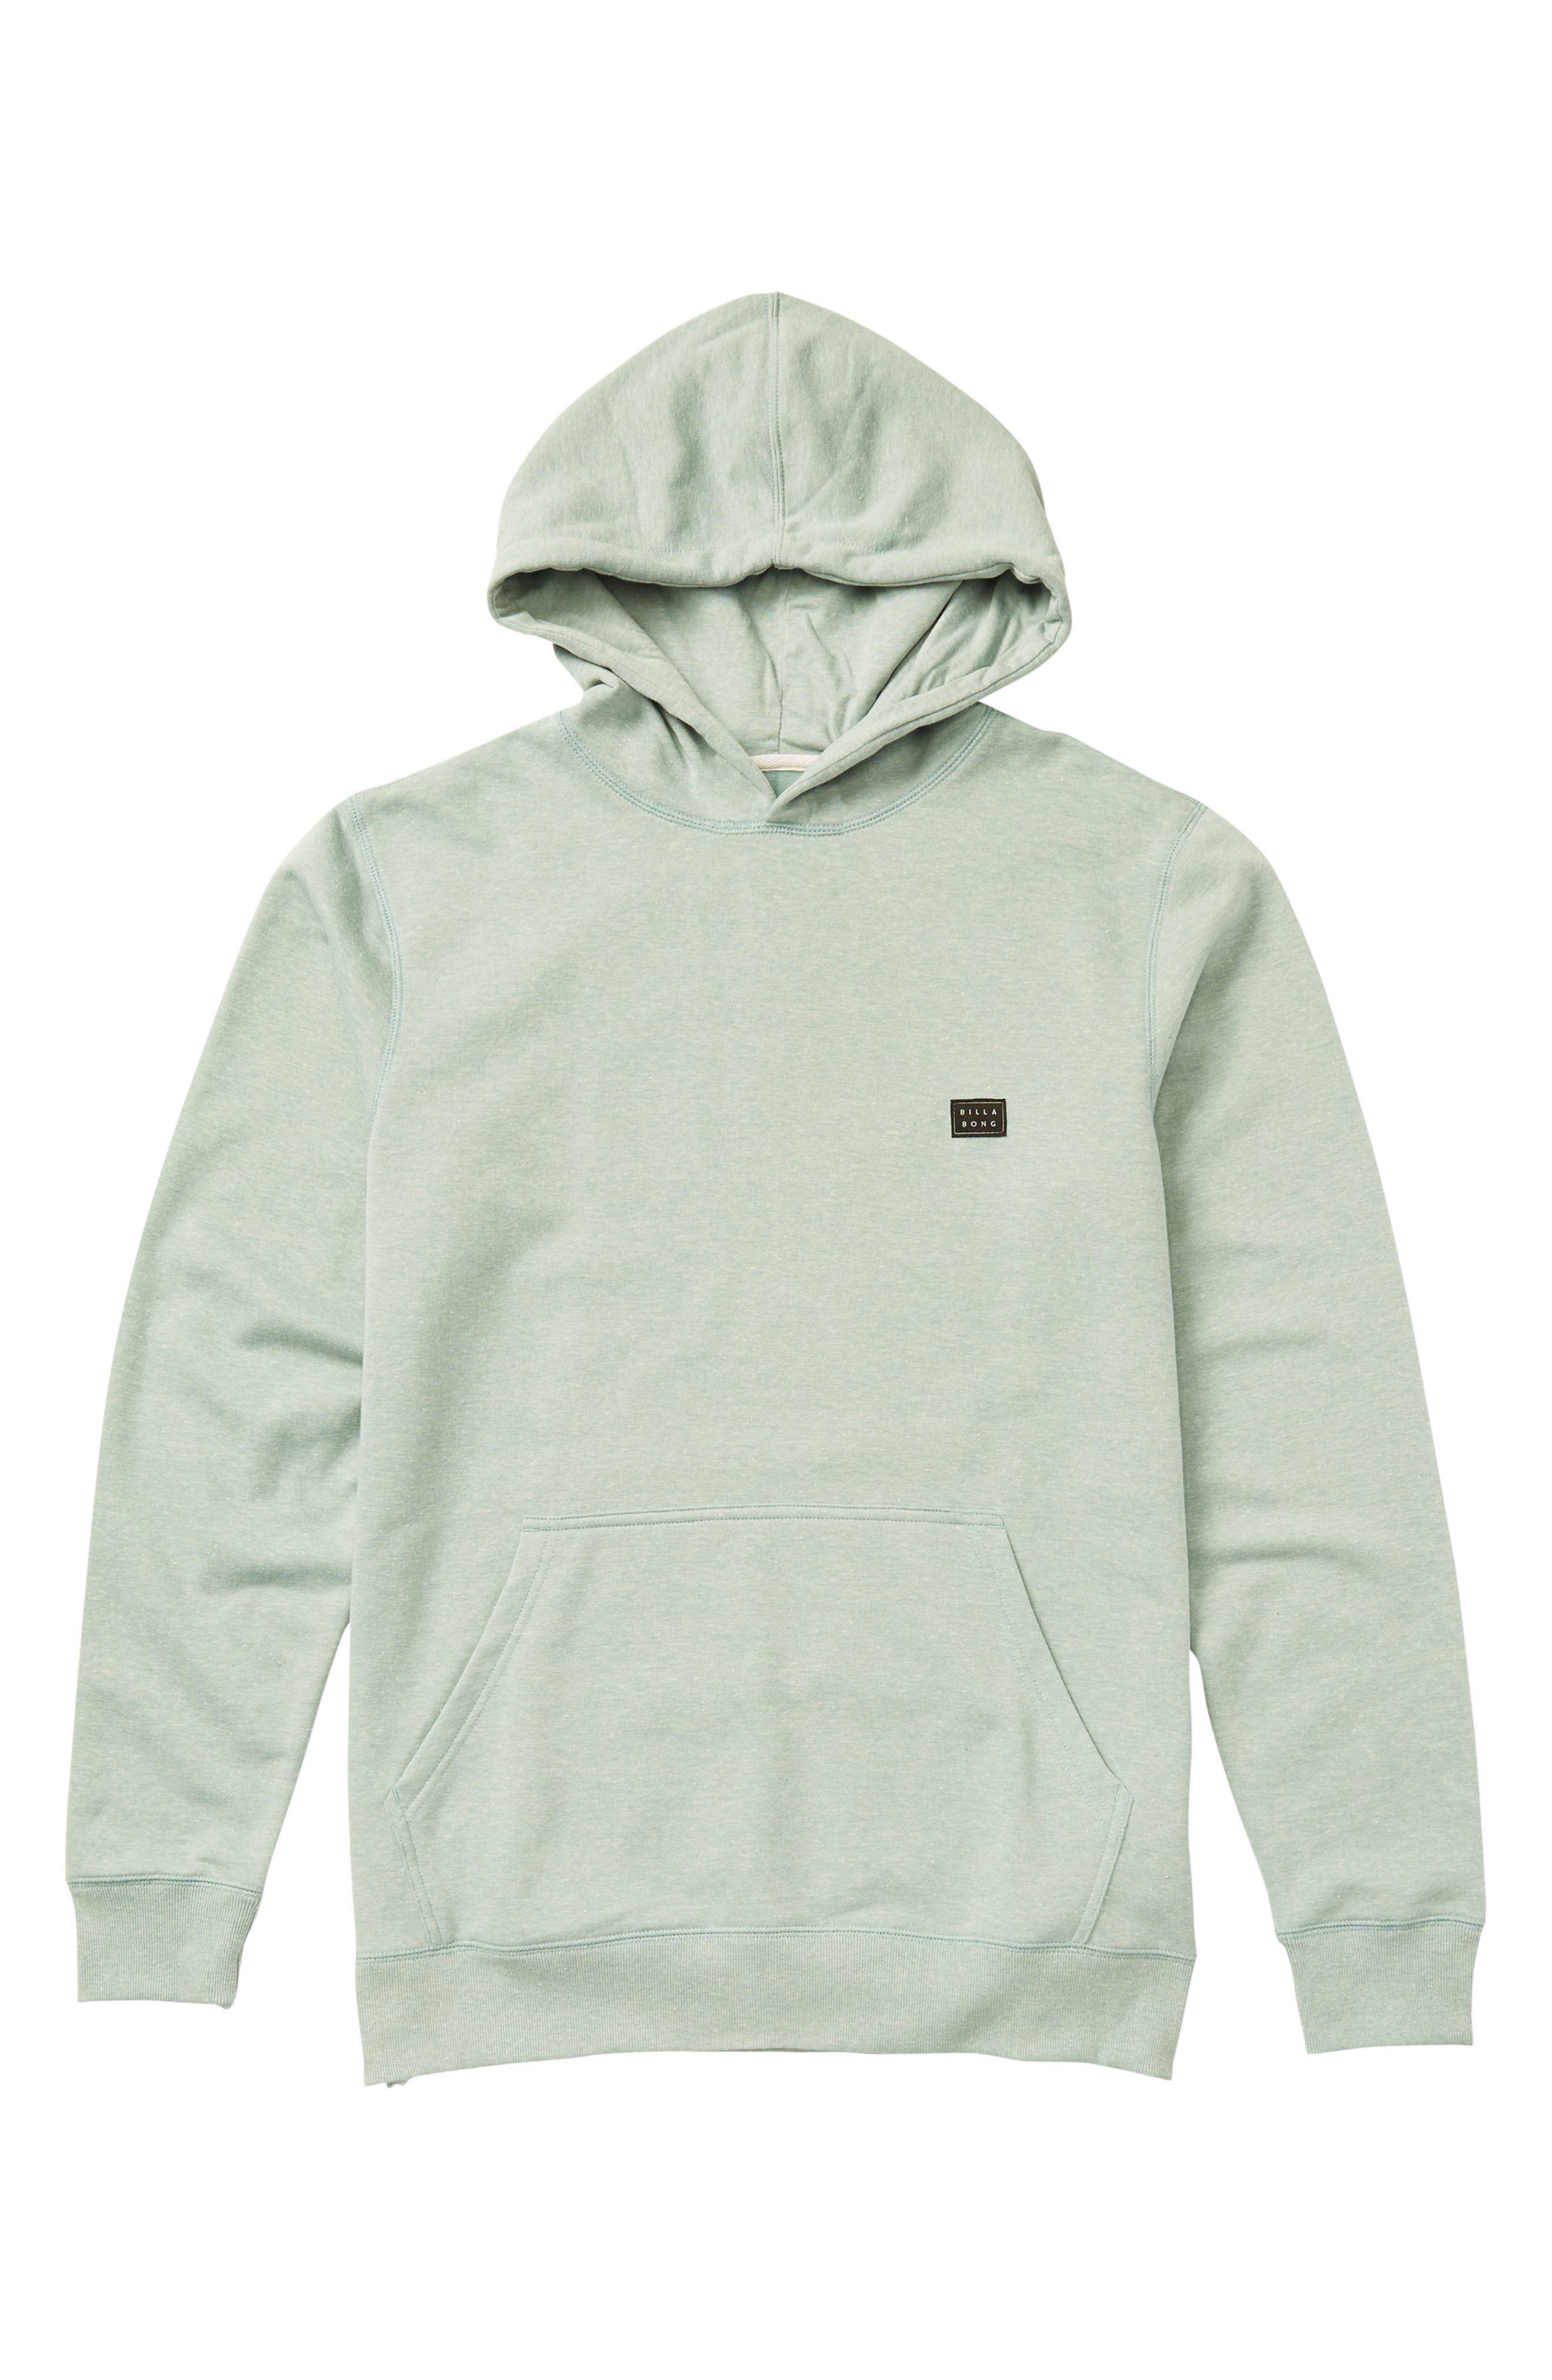 All Day Hoodie,                             Main thumbnail 1, color,                             DUST GREEN